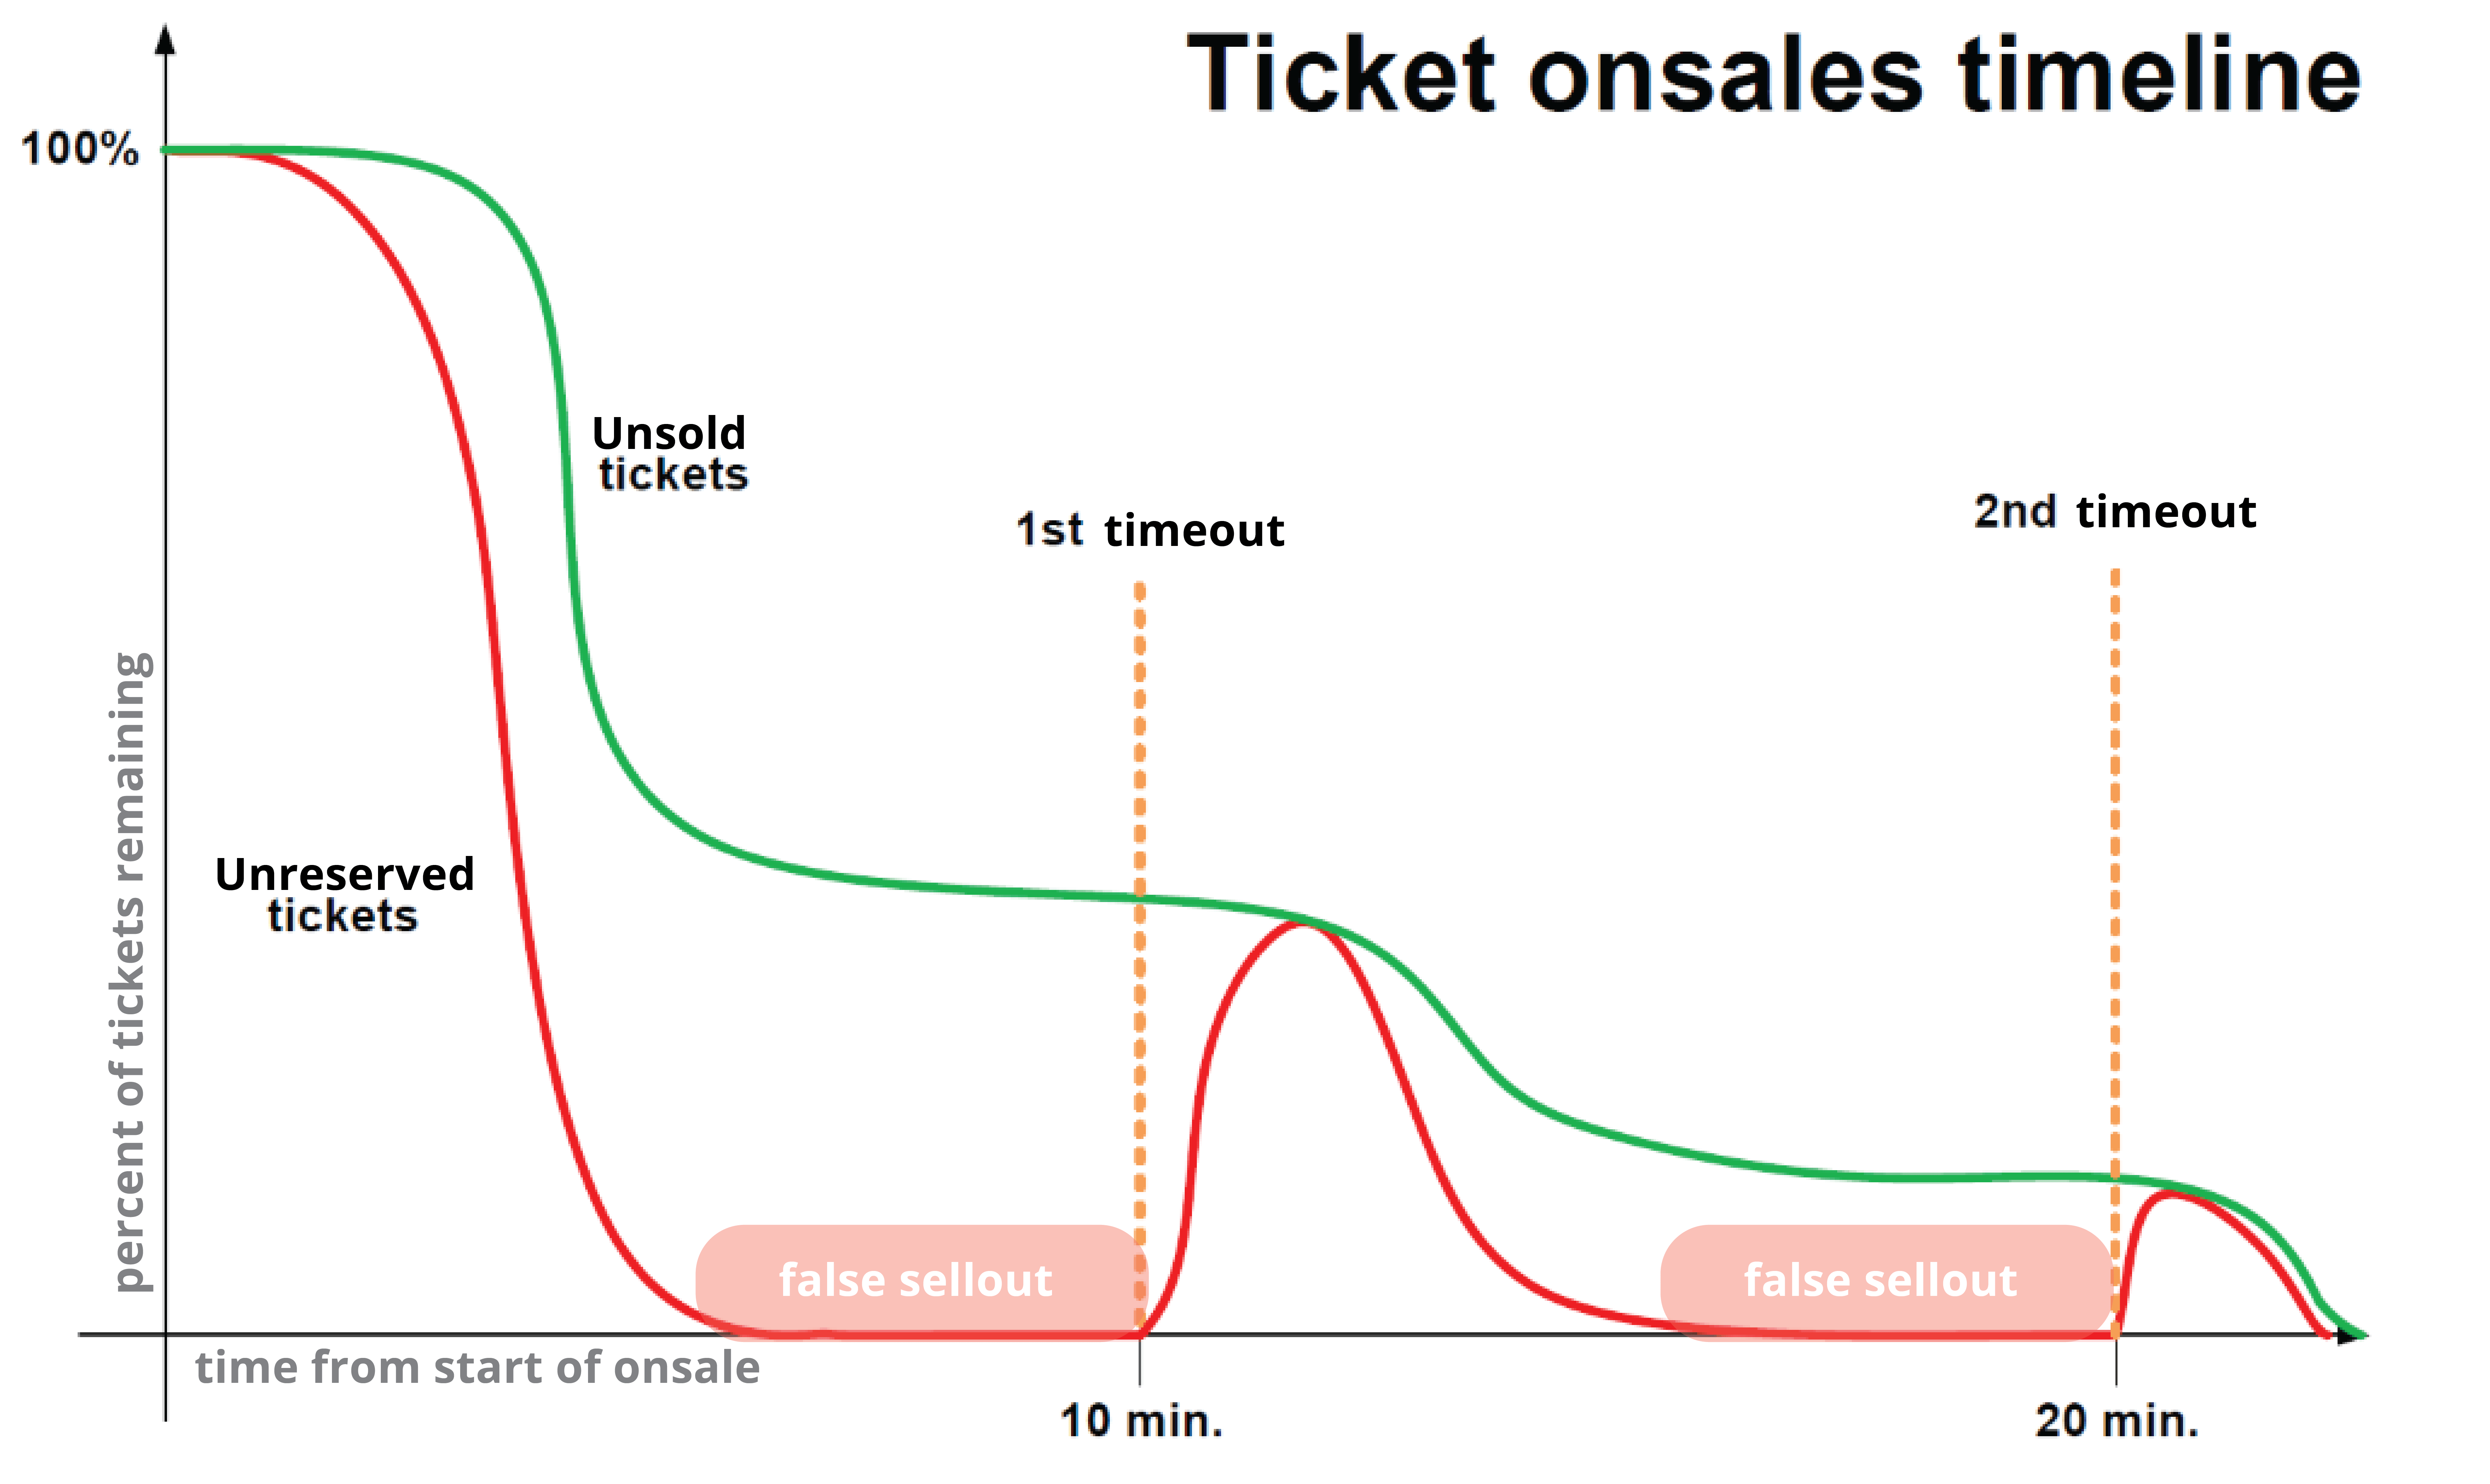 Ticket onsales timeline